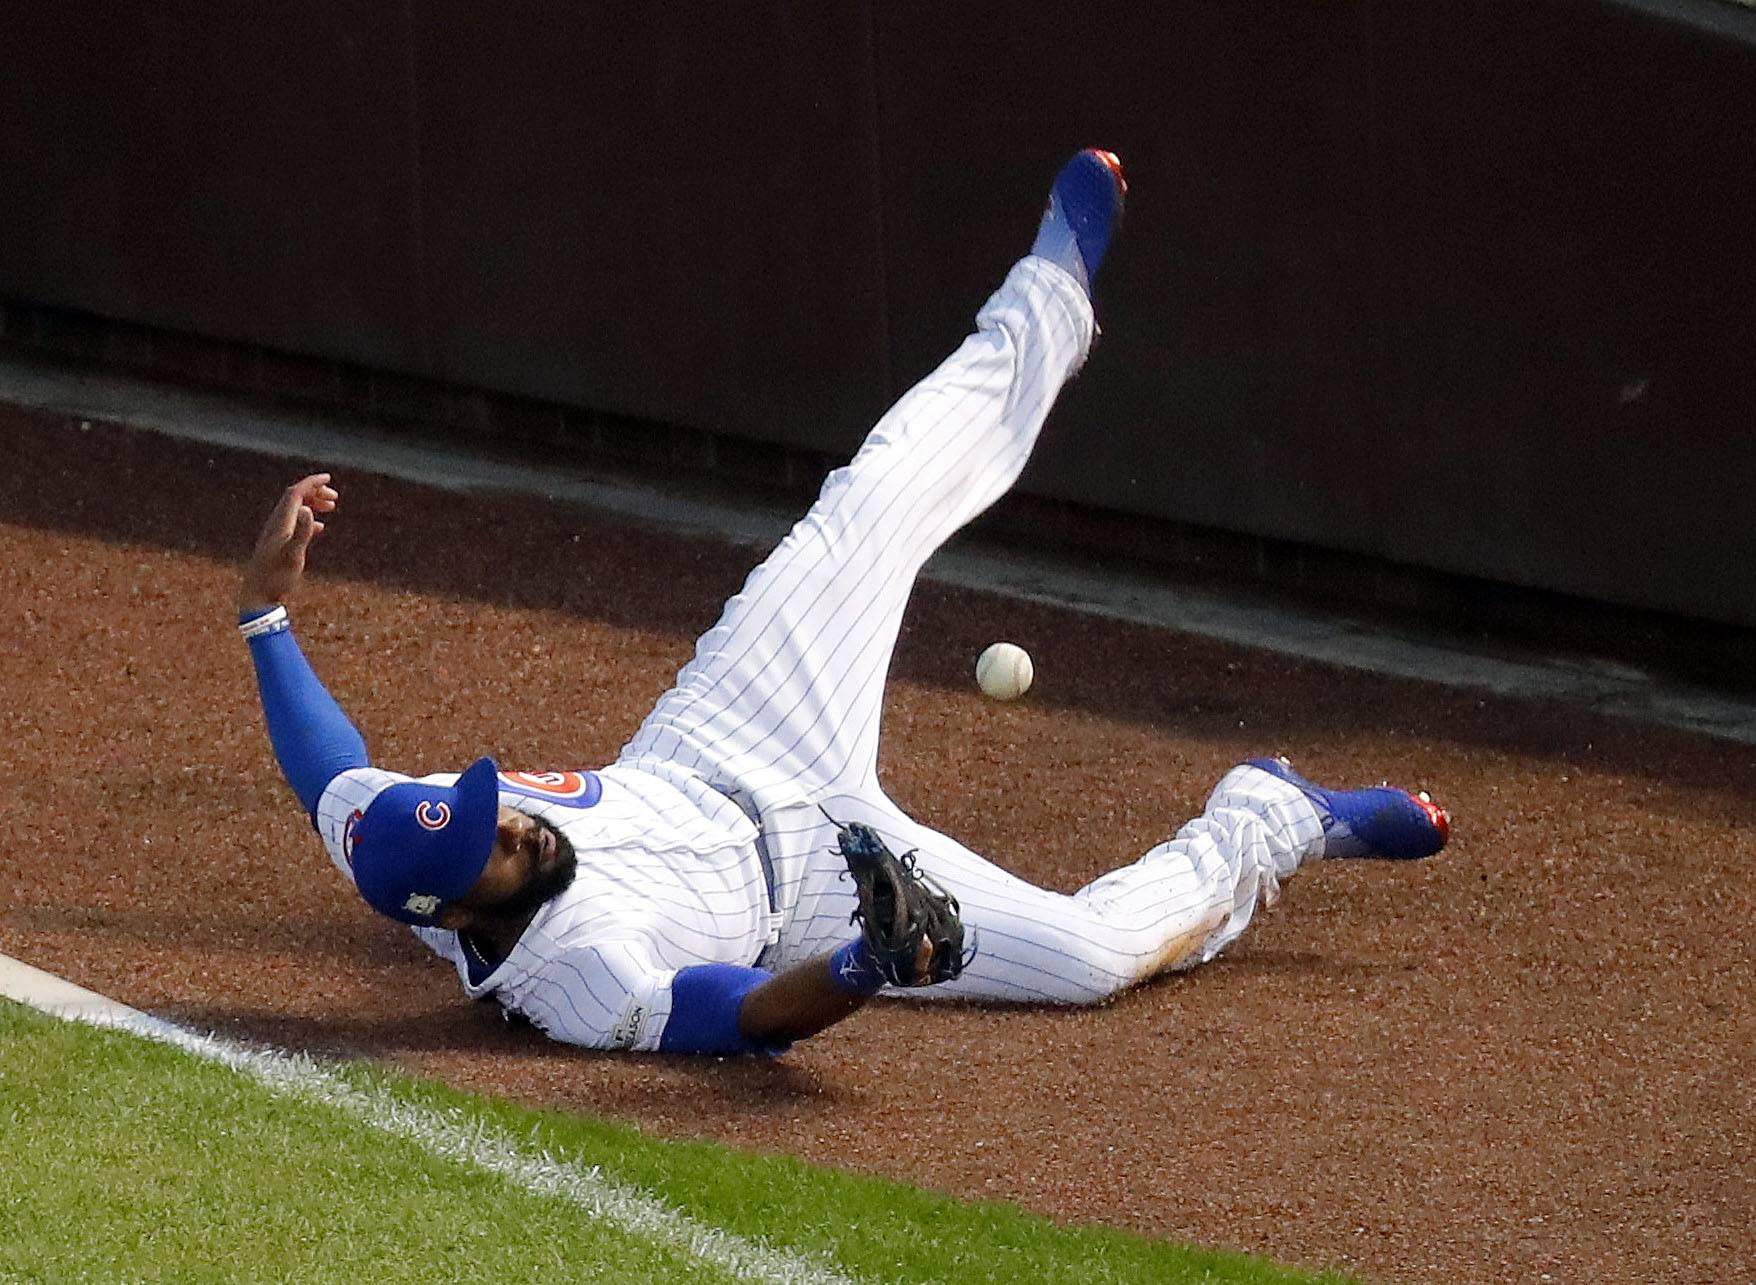 Steve Lundy/slundy@dailyherald.com Chicago Cubs right fielder Jason Heyward makes a diving attempt at a foul ball in the 6th inning during Game 4 of the National League division series at Wrigley Field in Chicago Wednesday, October 11, 2017.